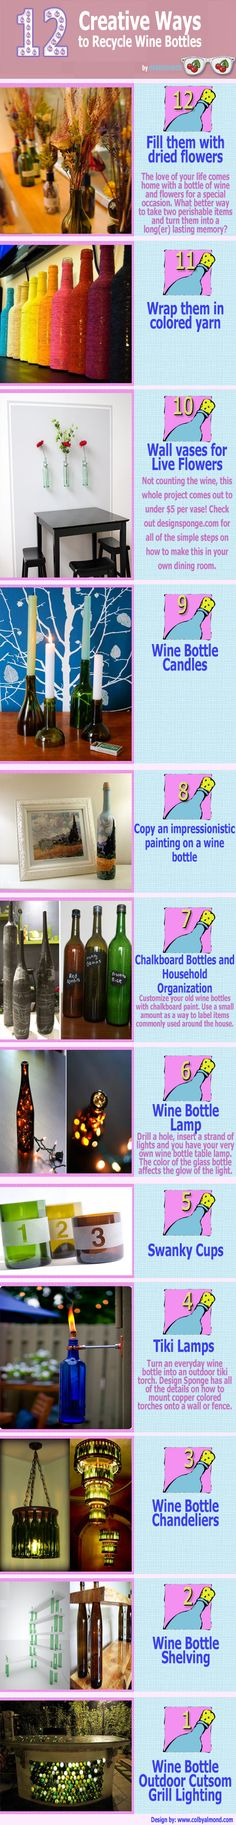 Top 12 Art Pieces-Wine bottles Crafted and Recycled Beautifully